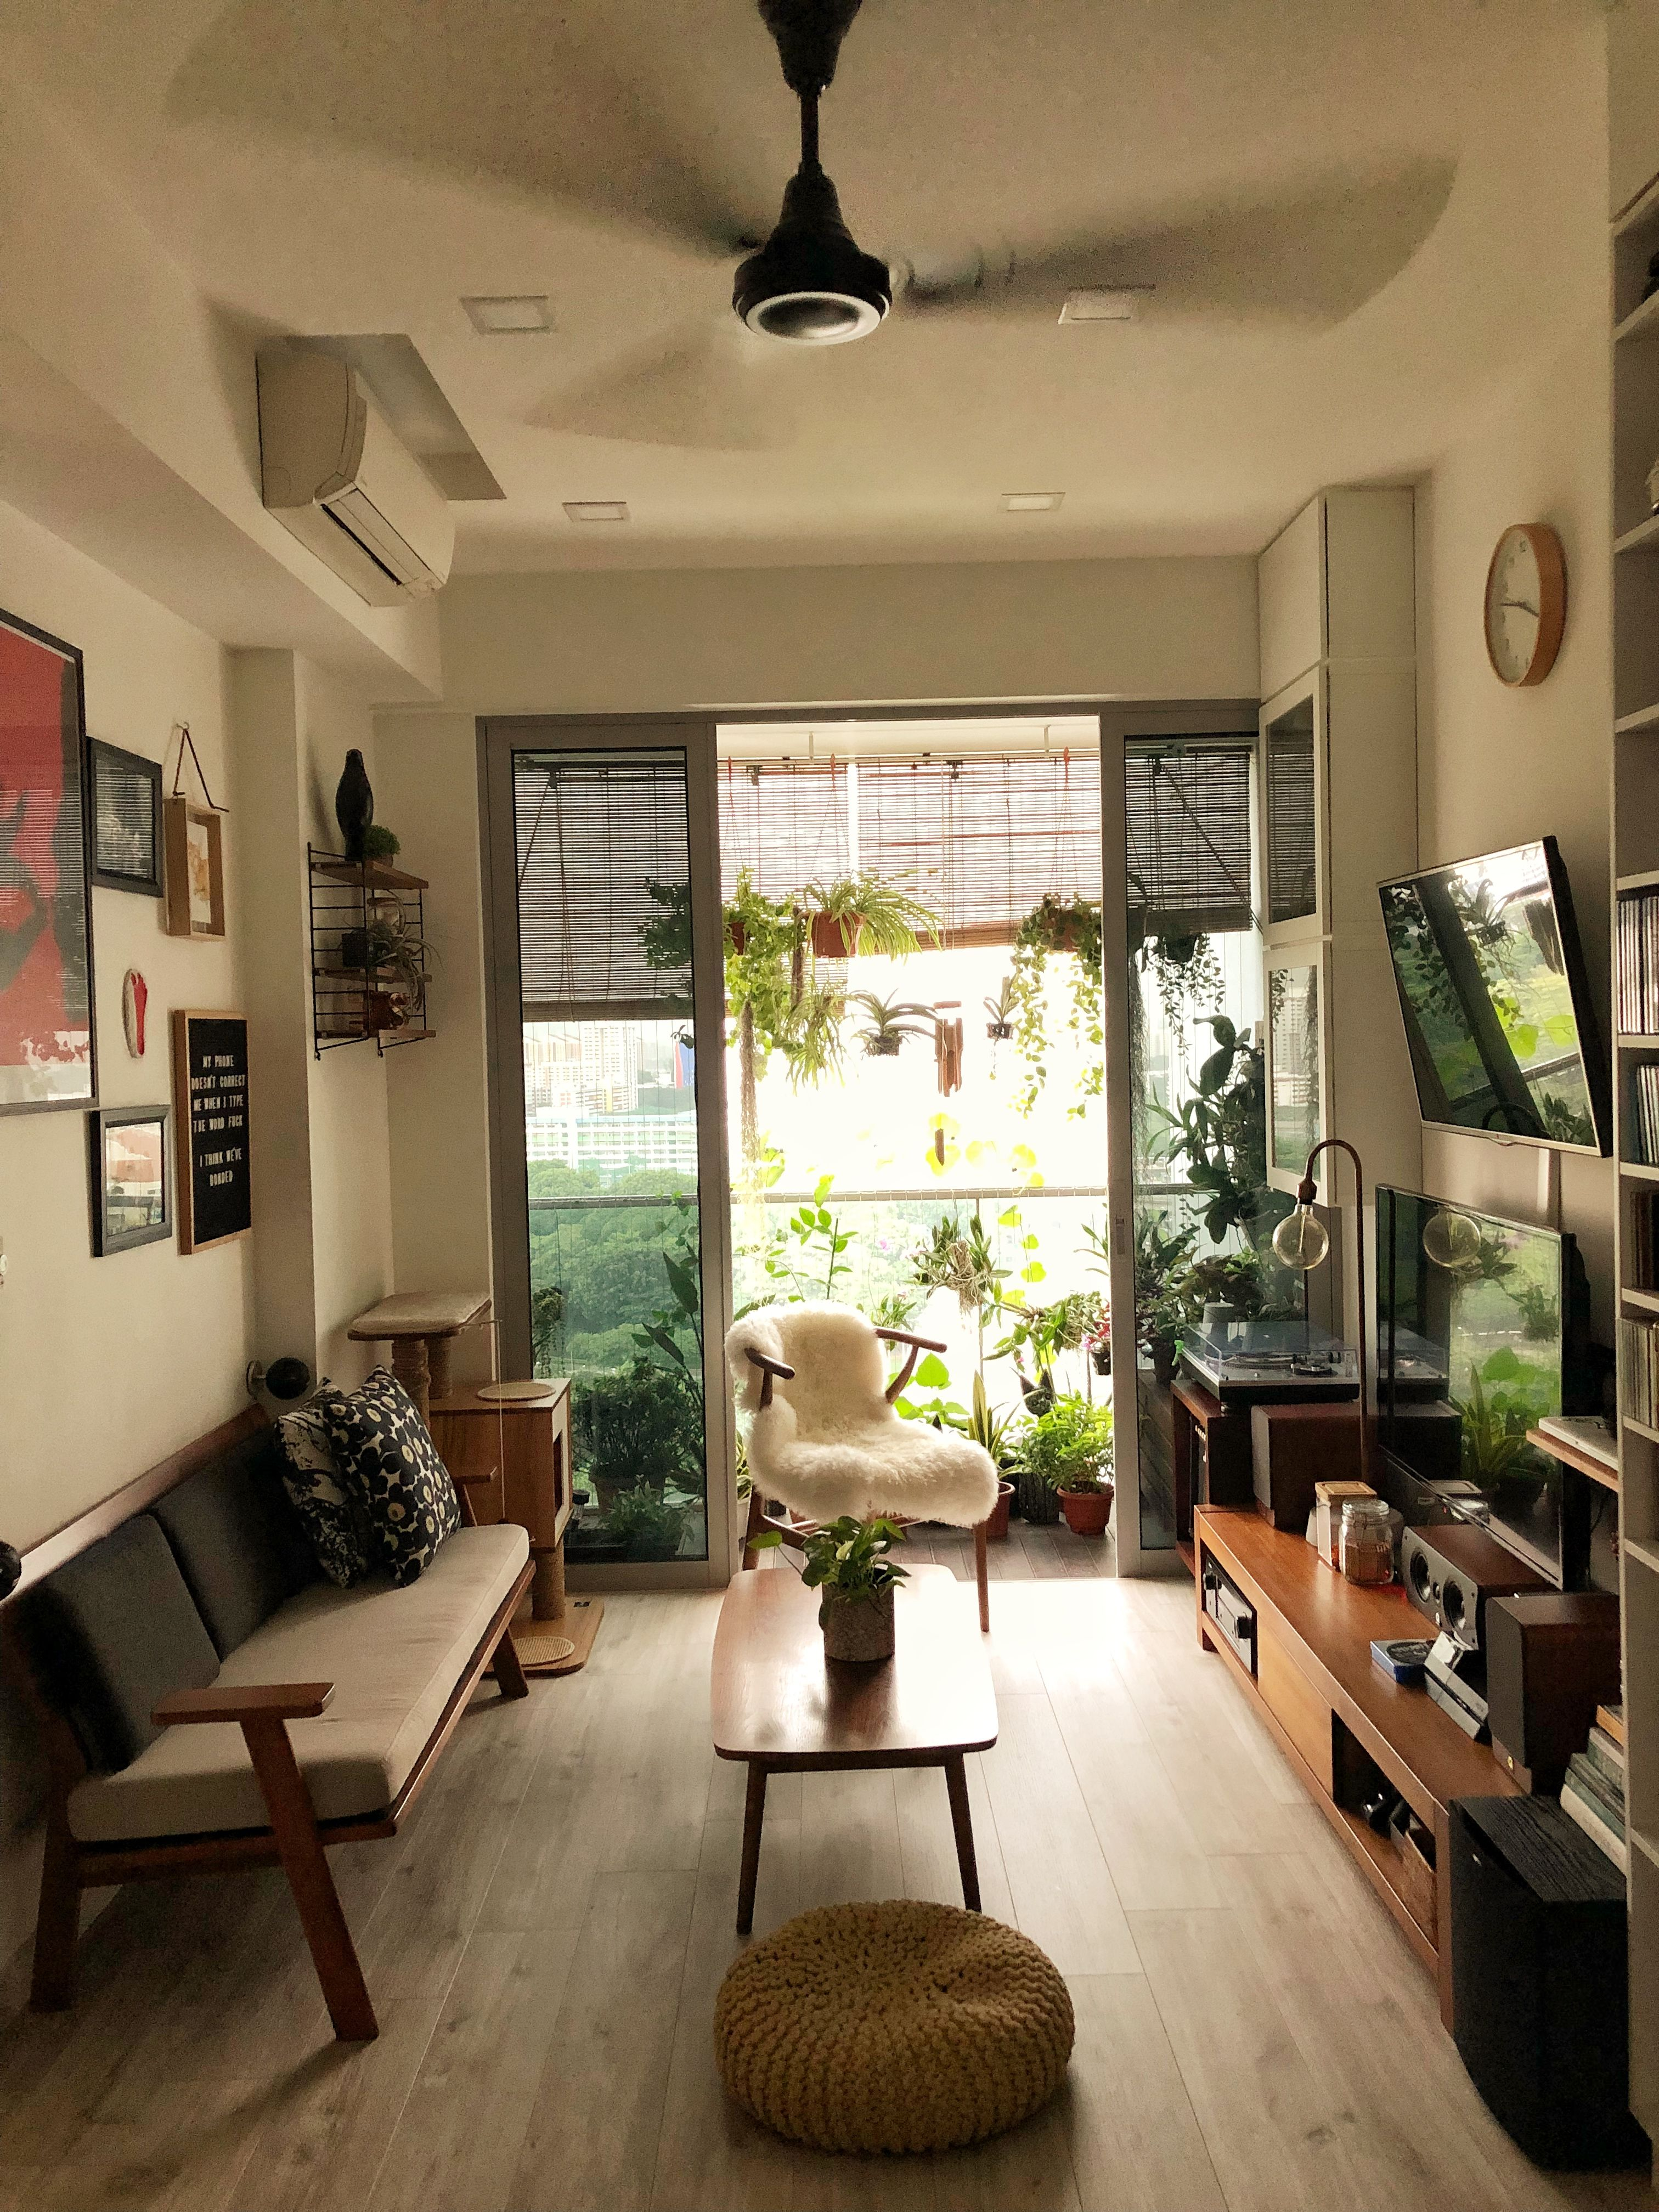 Small Living Room Small House Interior Design Small House